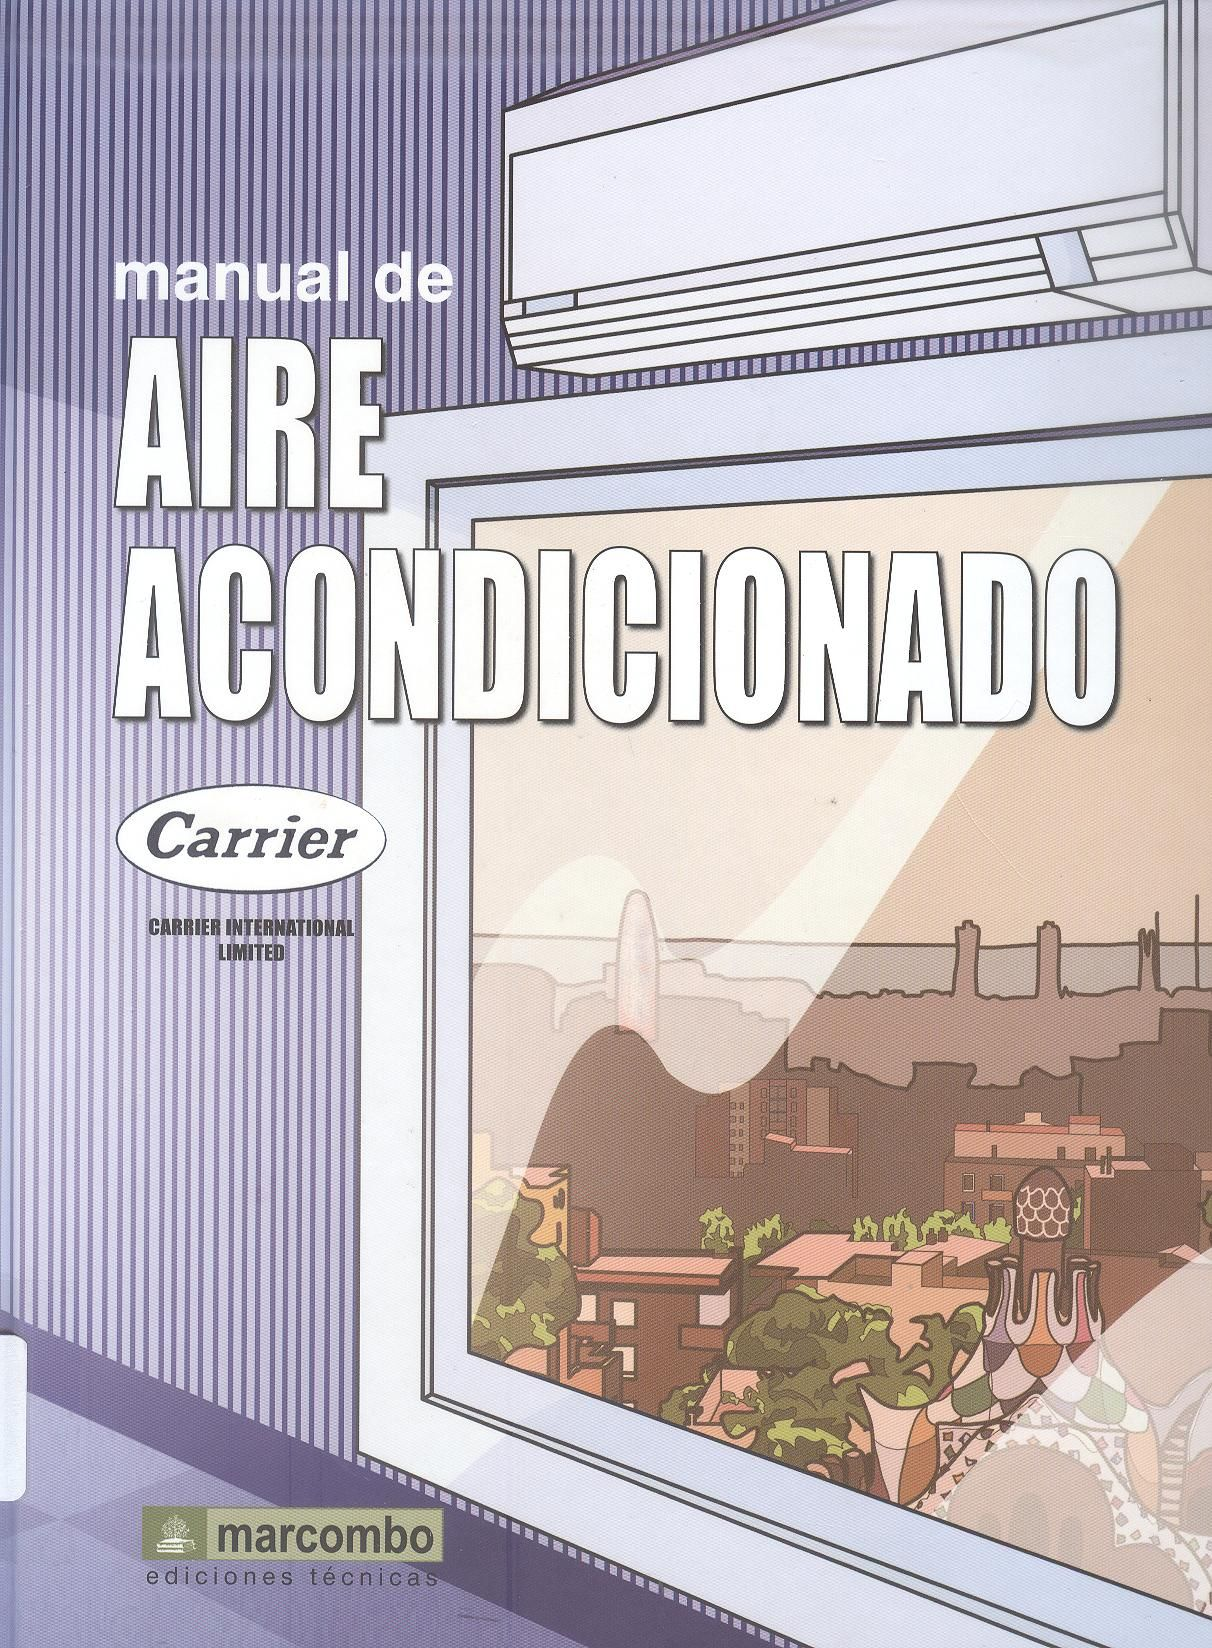 Carrier Air Conditioning Company. Manual de aire